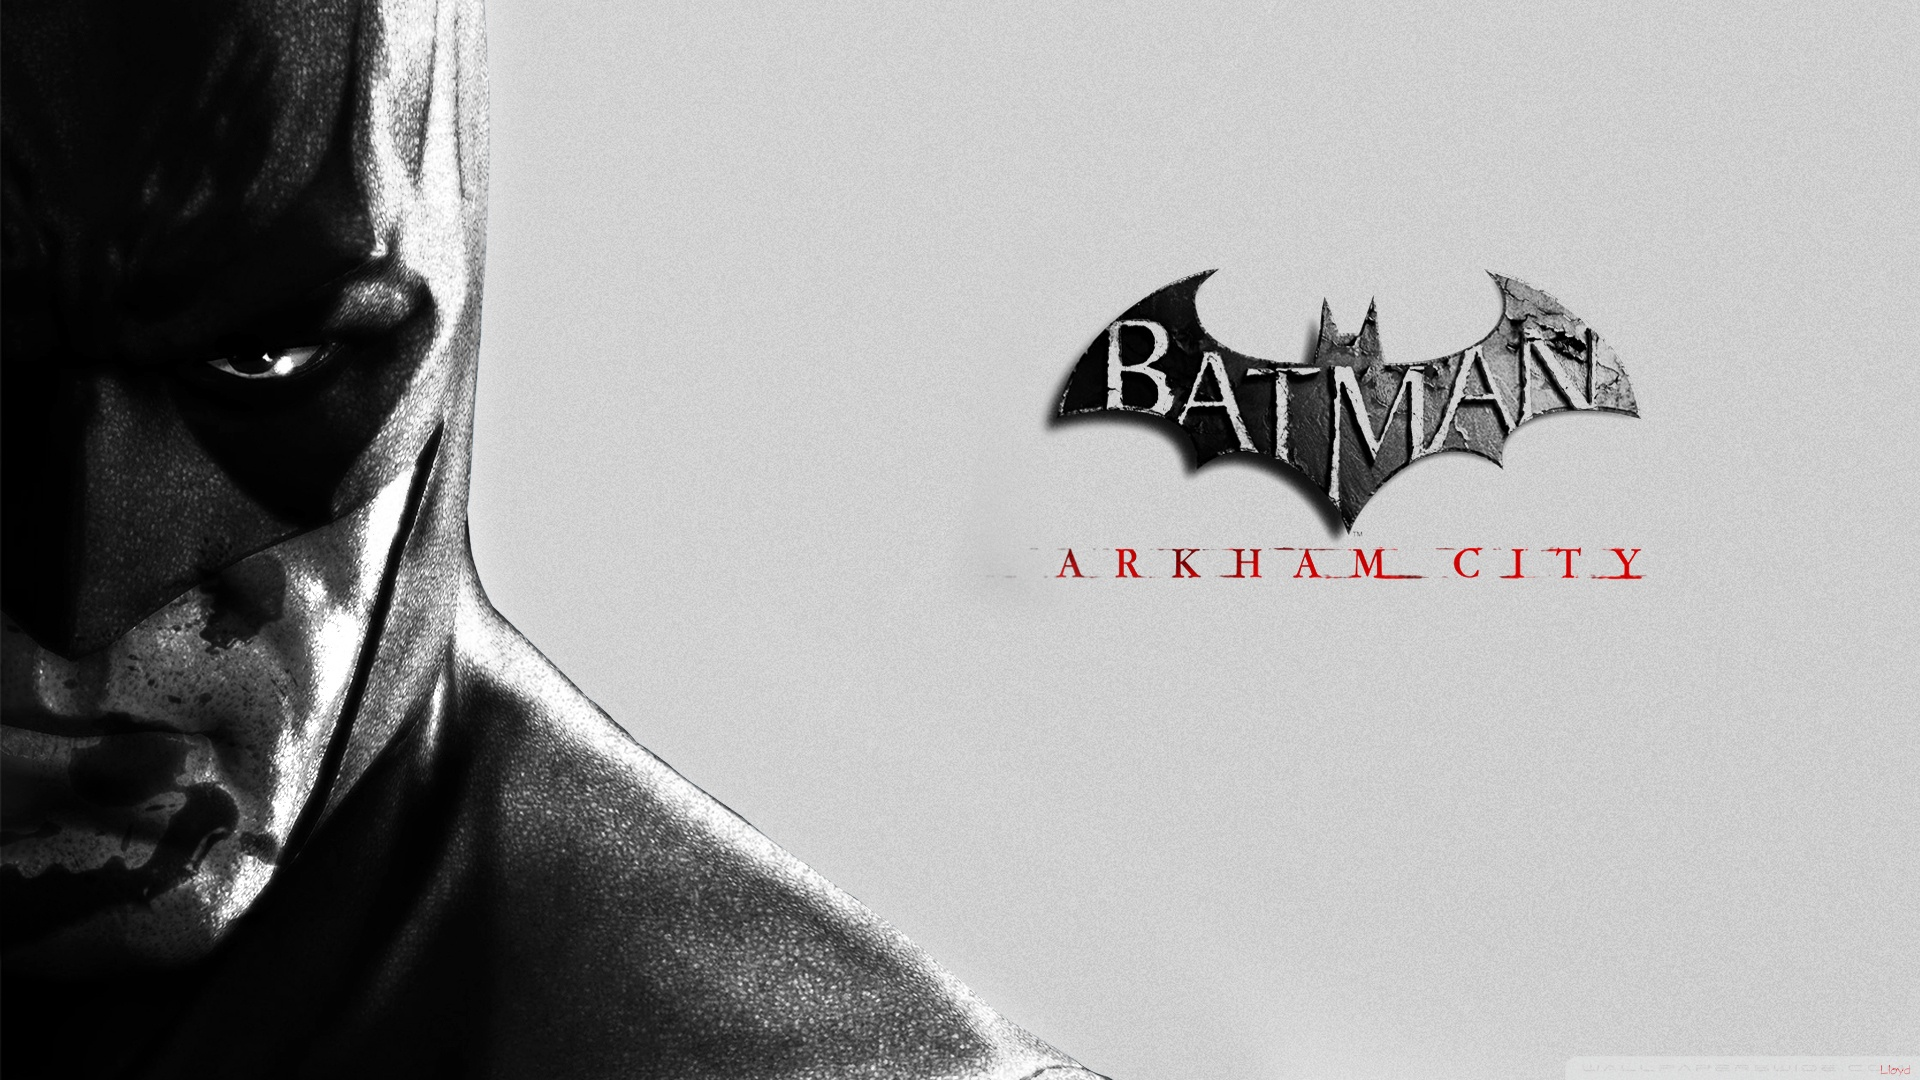 batman arkham city Batman: Arkham City   Behind the Scenes with the Voice Cast, Luke Skywalker Included